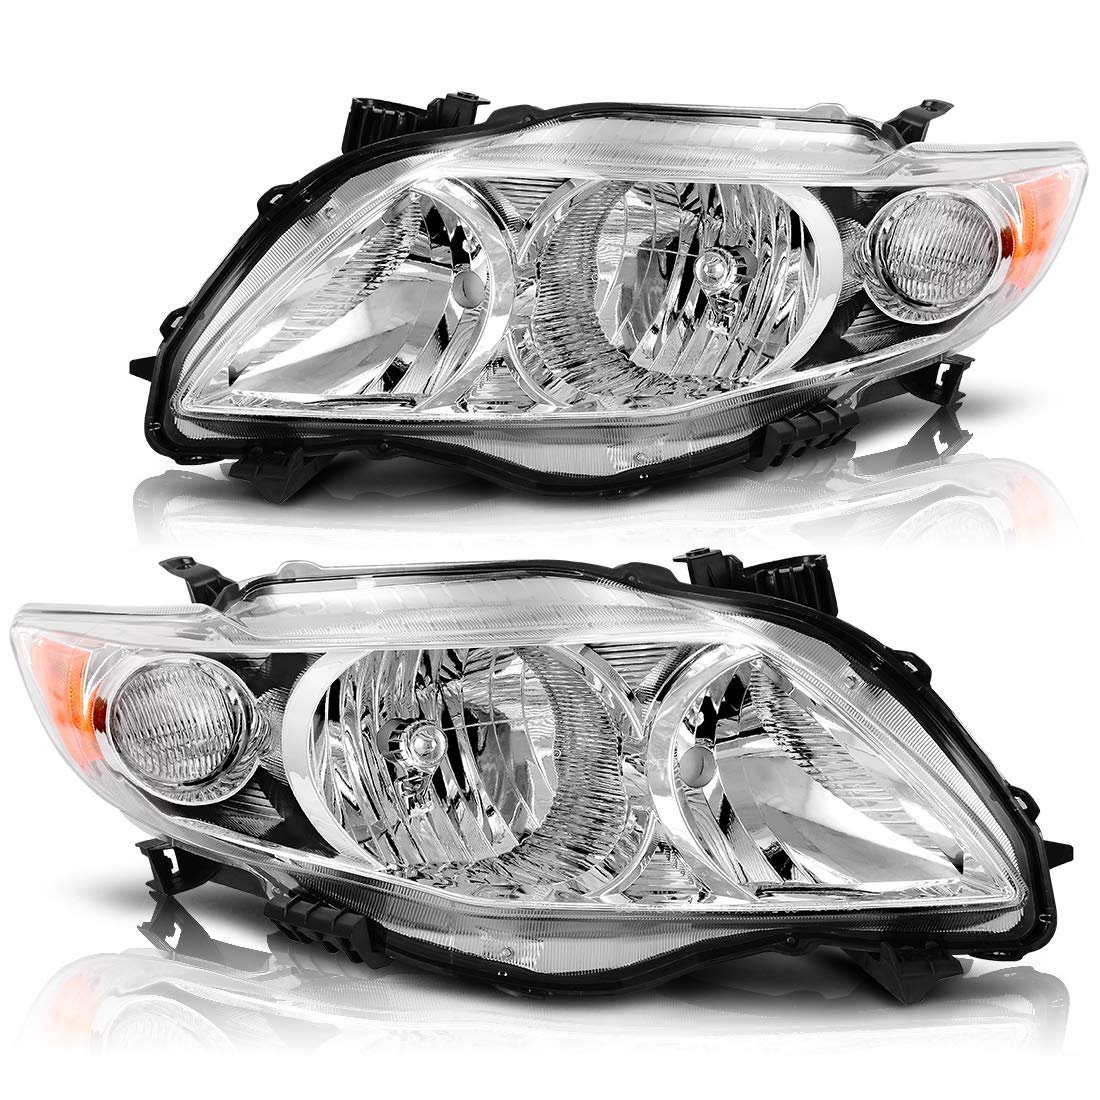 AUTOSAVER88 Headlight Assembly Compatible with 2009 2010 Toyota Corolla Chrome Housing Amber Reflector (Driver and Passenger Side)